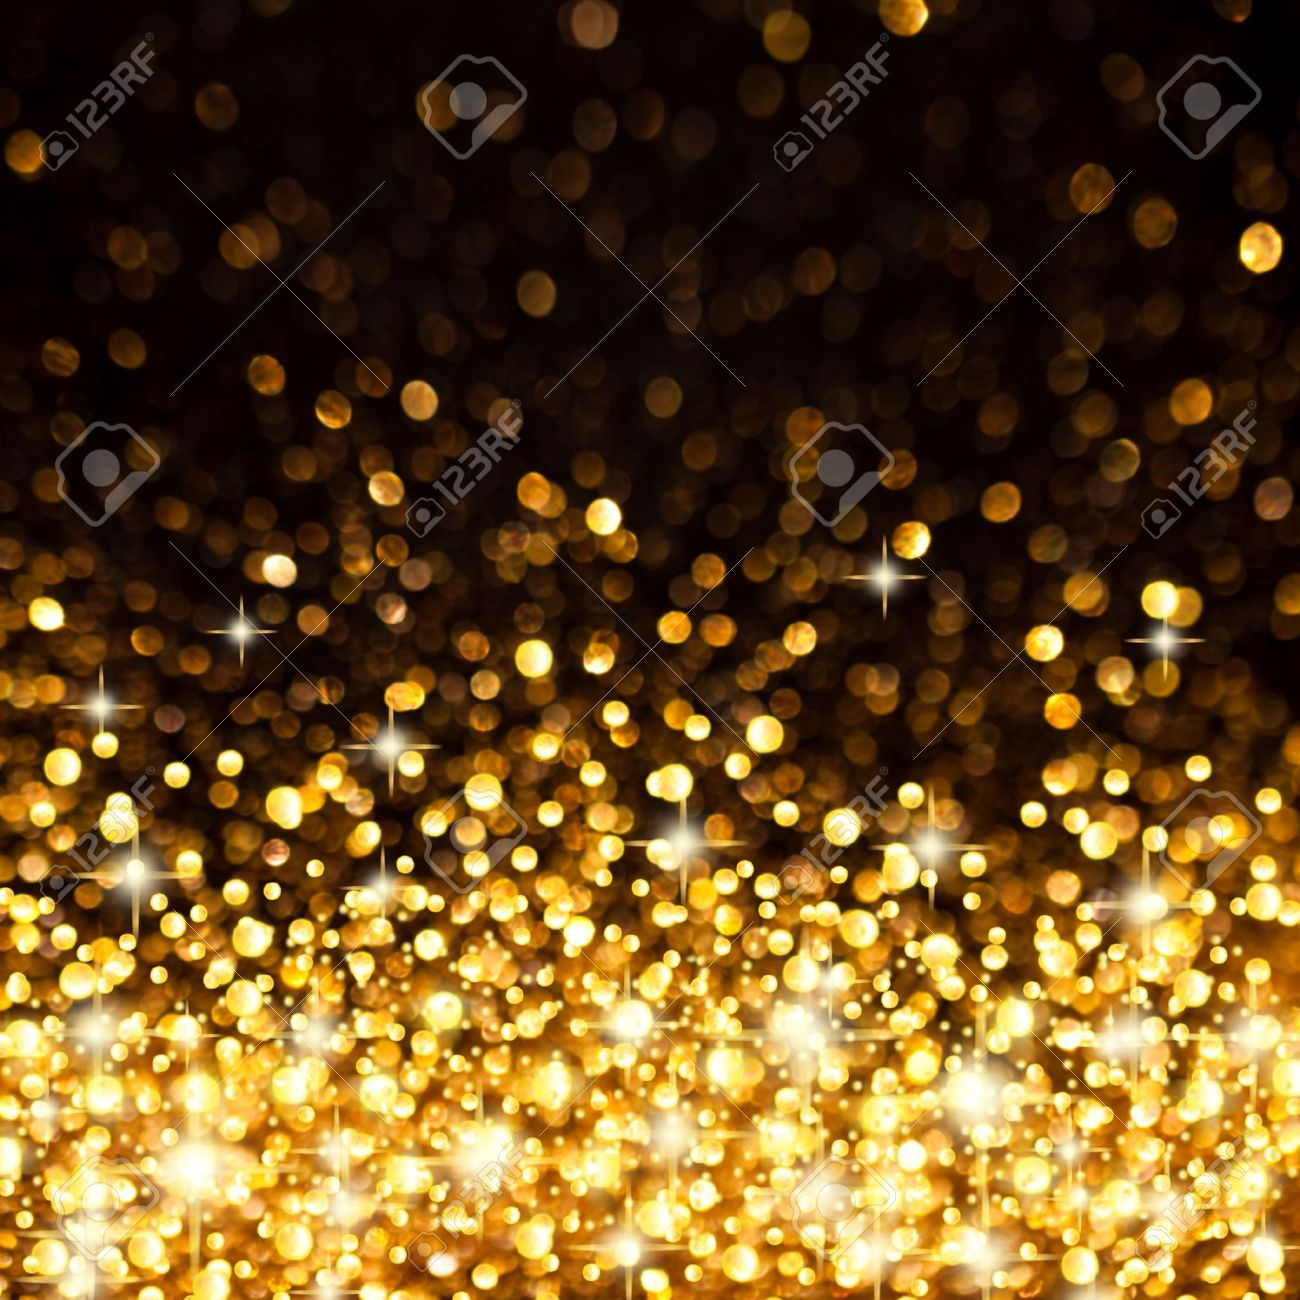 Golden Background Image Image of Golden Christmas